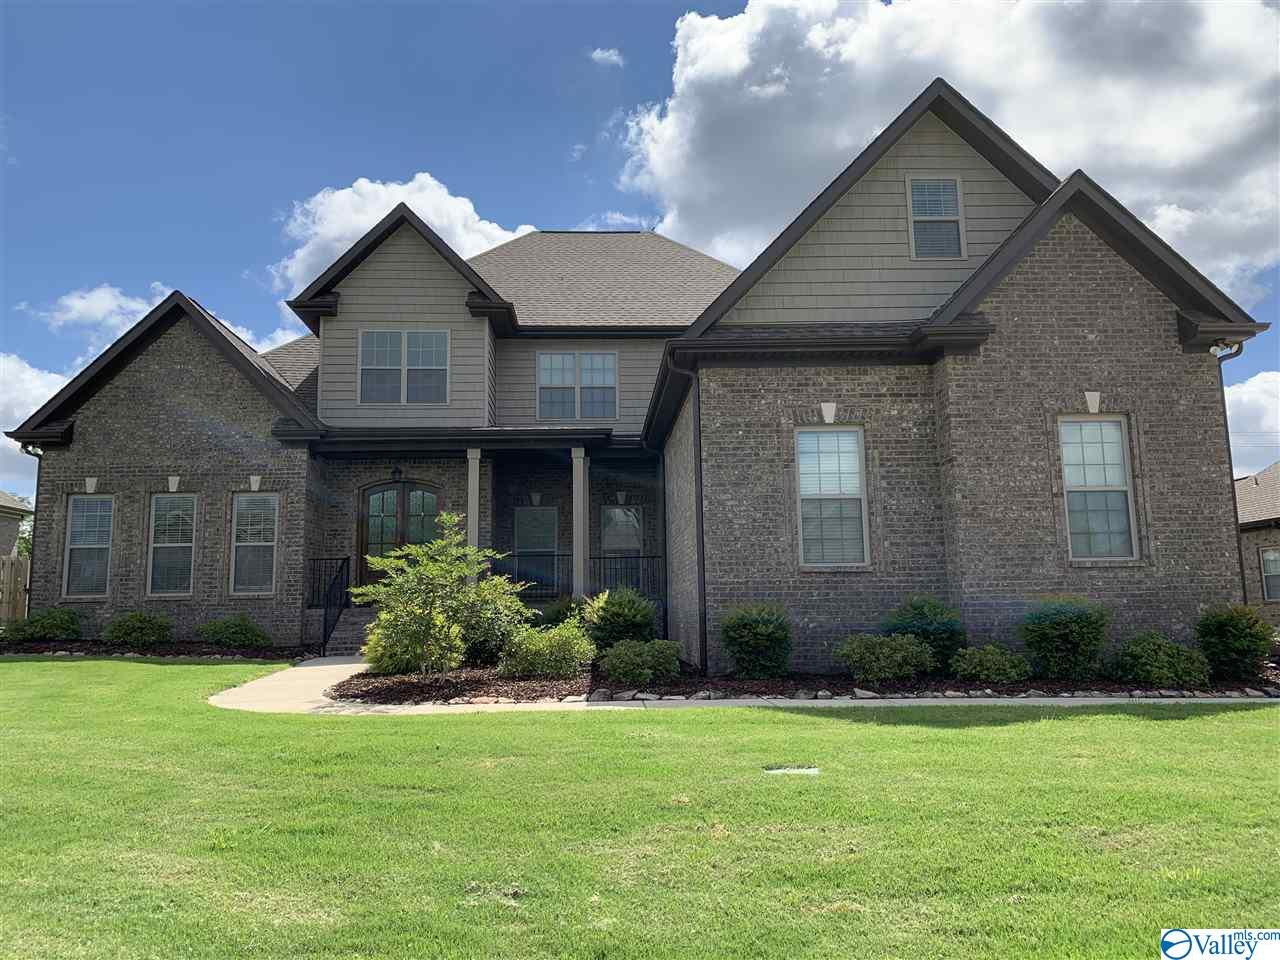 22580 BLUFFVIEW DRIVE, ATHENS, AL 35613